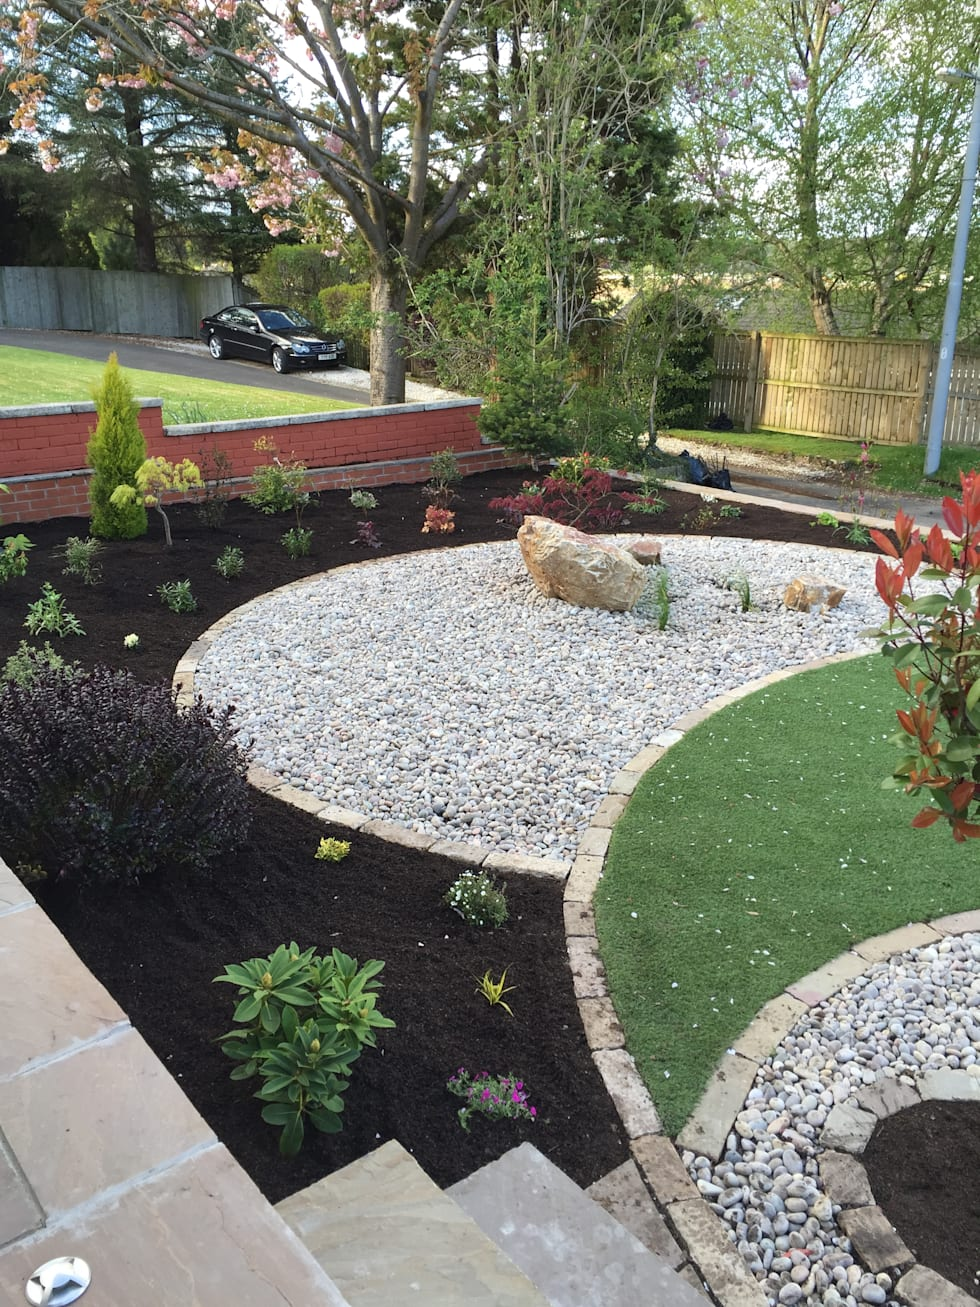 Easy ways to cultivate your garden space